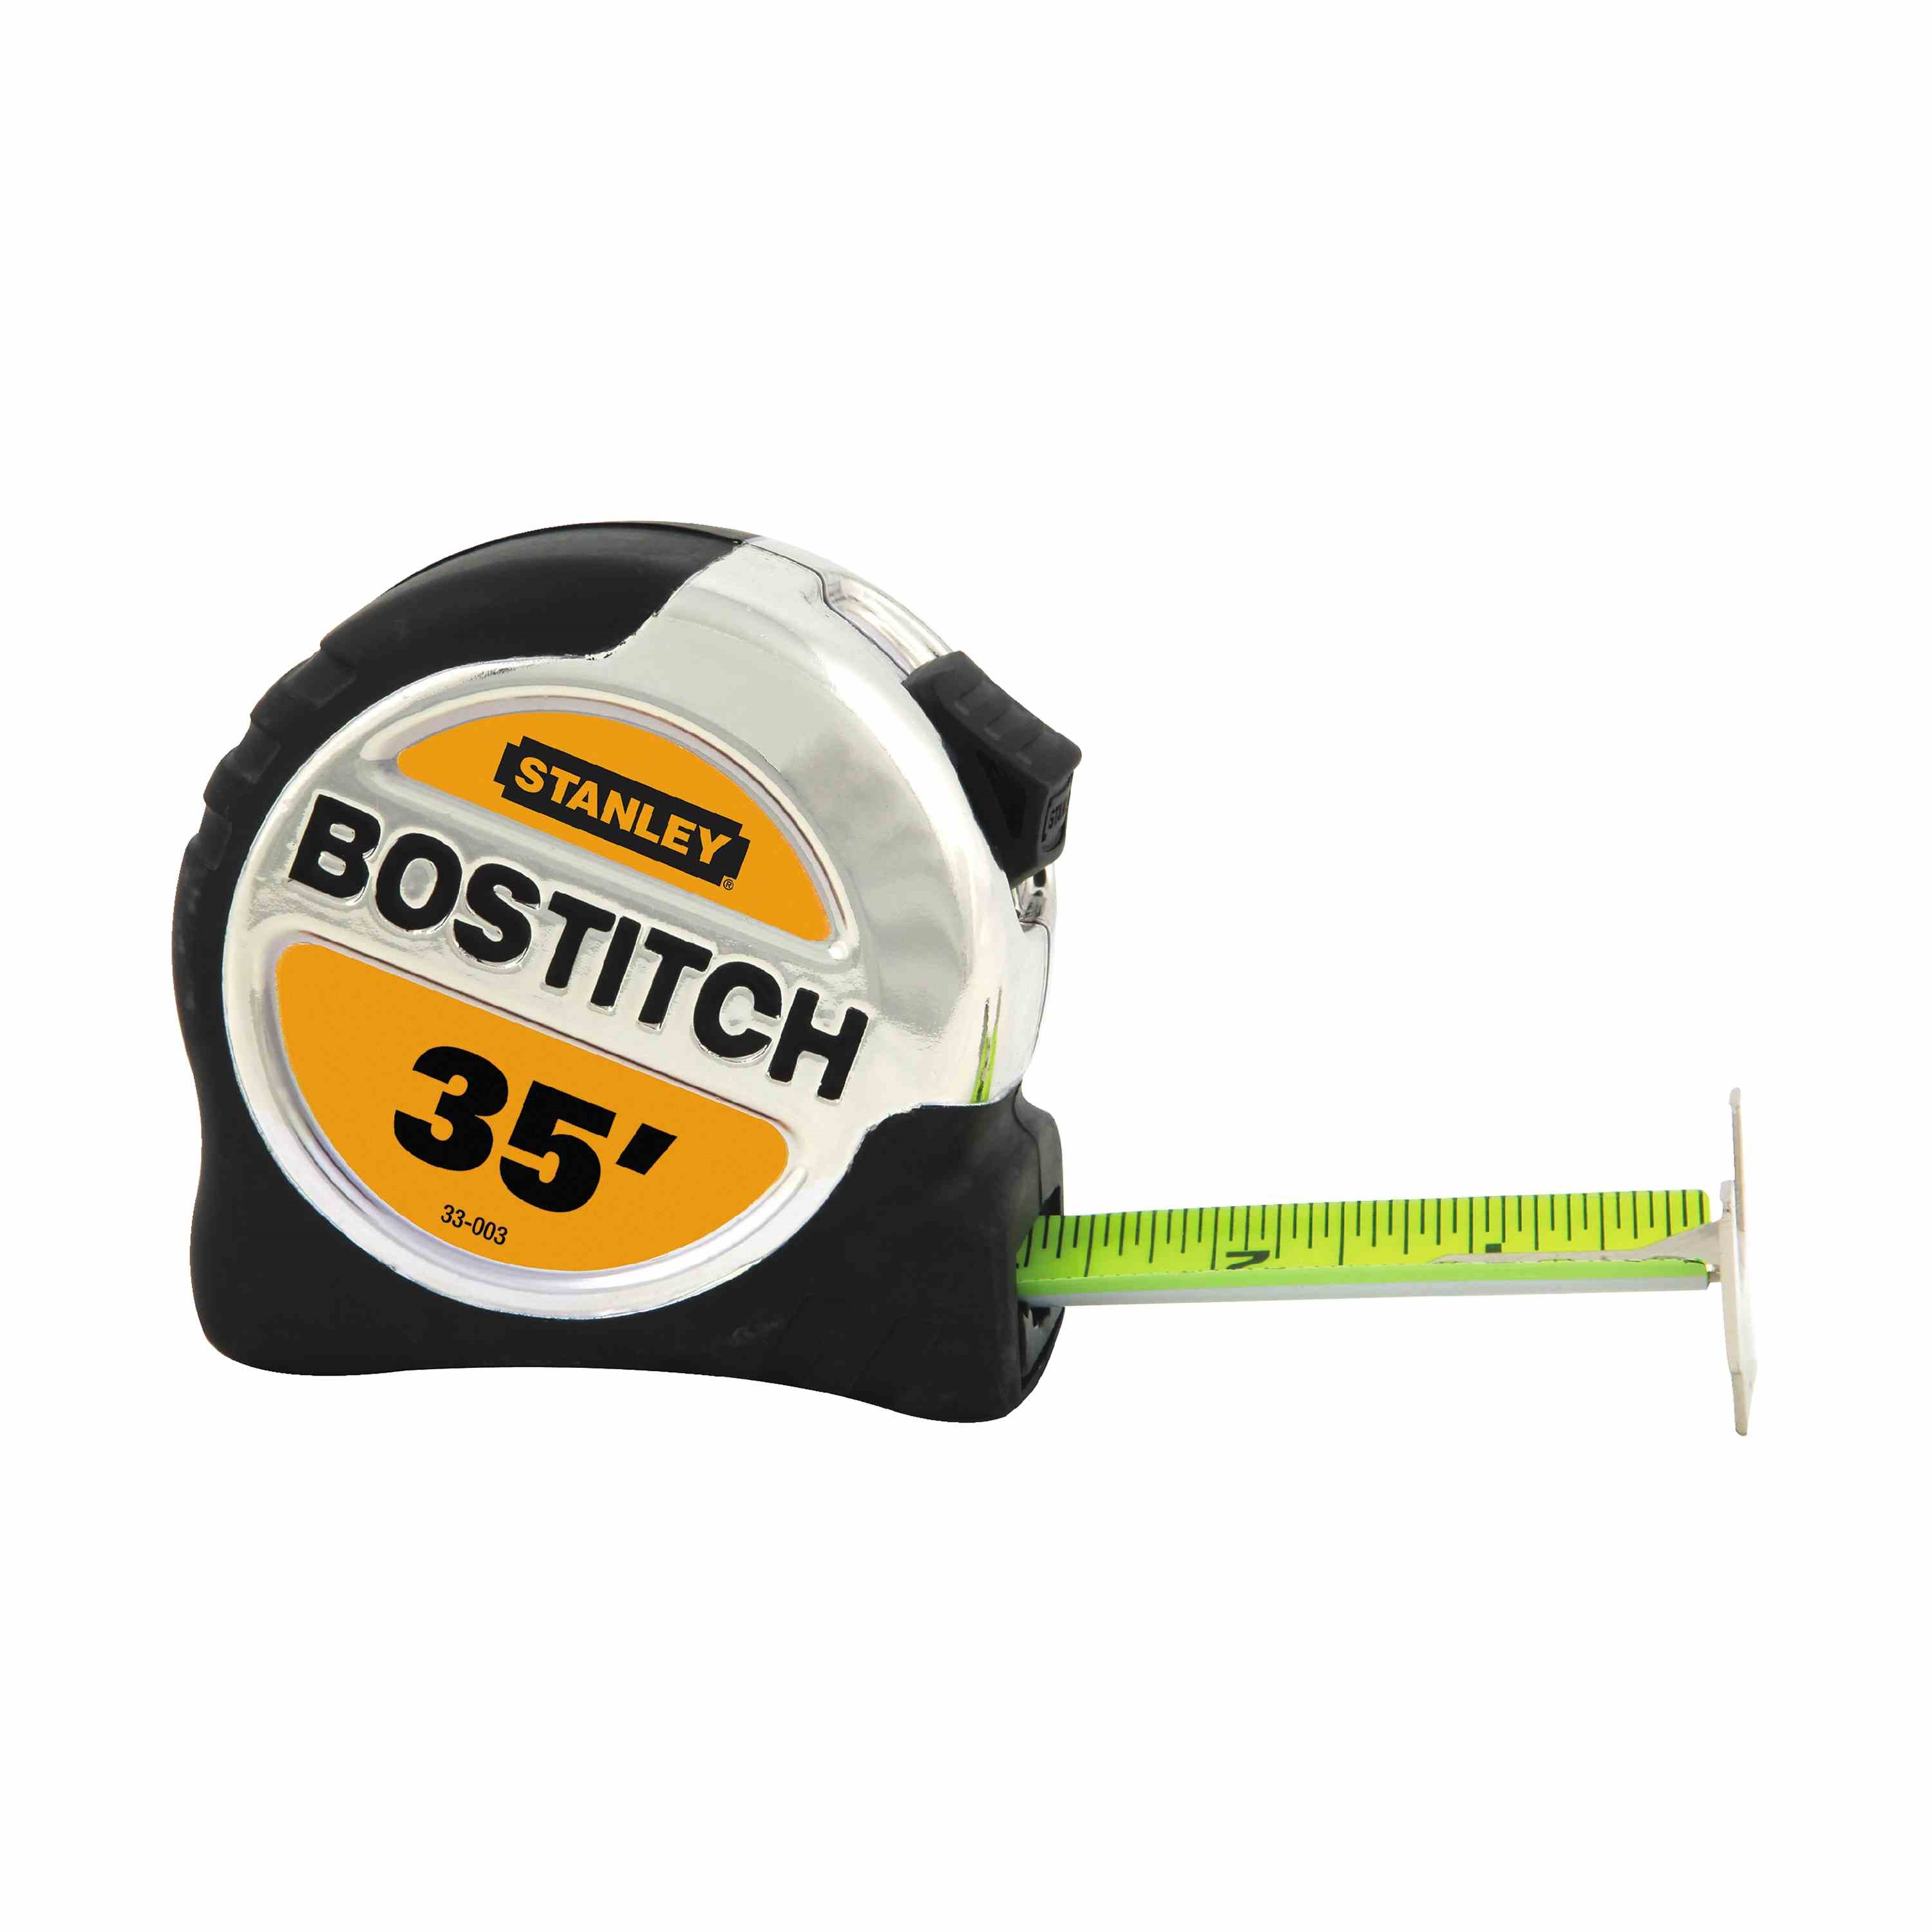 Bostitch - 114 in x 35 ft BiMaterial Tape Rule with BladeArmor - 33-003